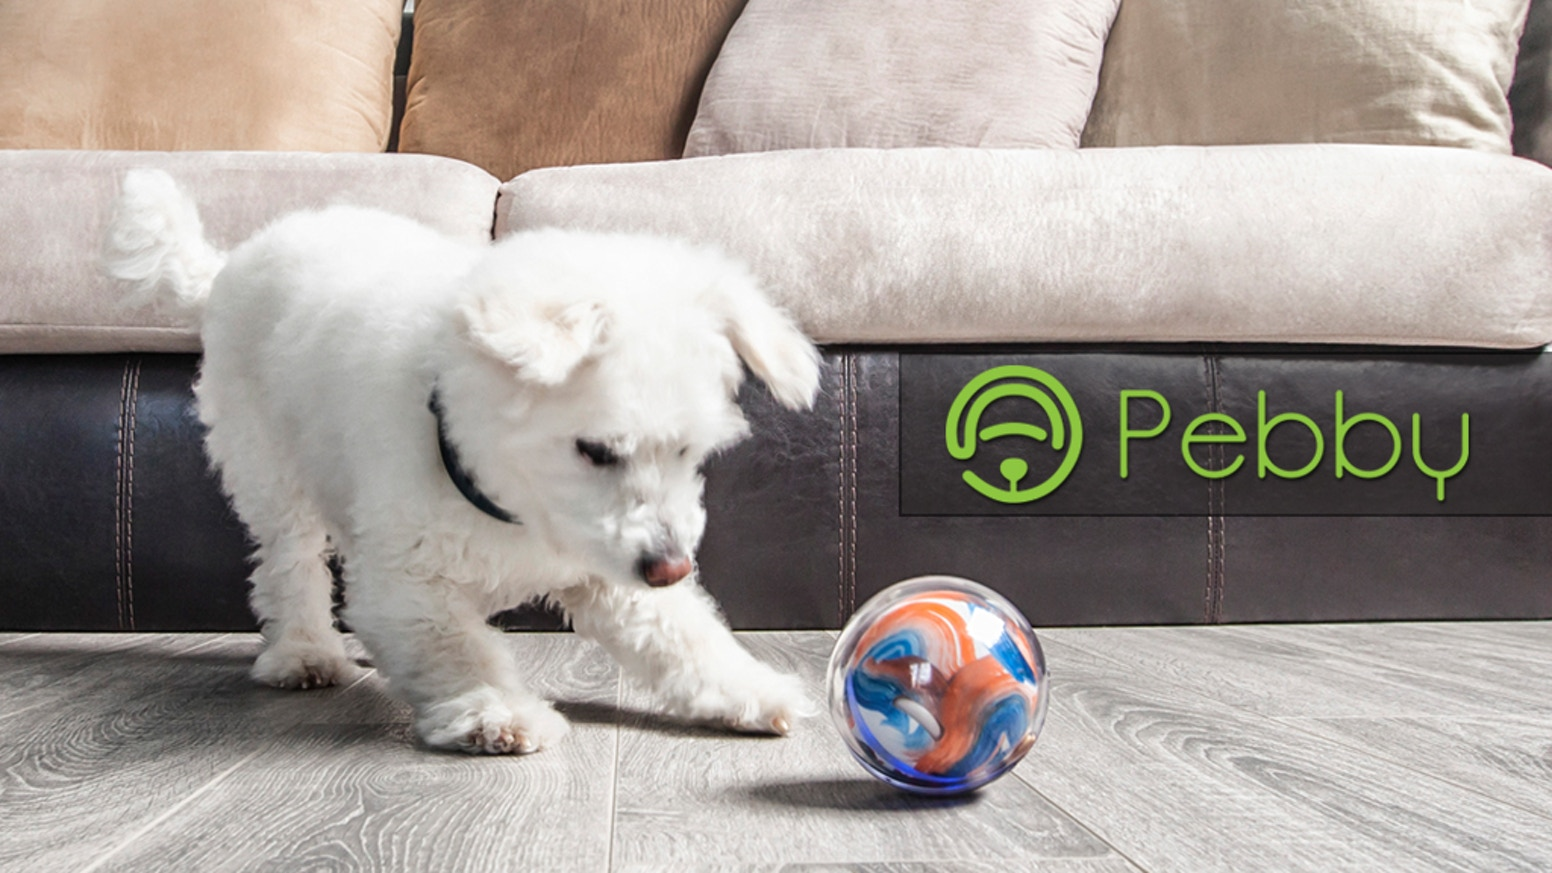 Pebby makes sure your pets are never alone at home. Track, monitor, and play with your pet from anywhere in the world.